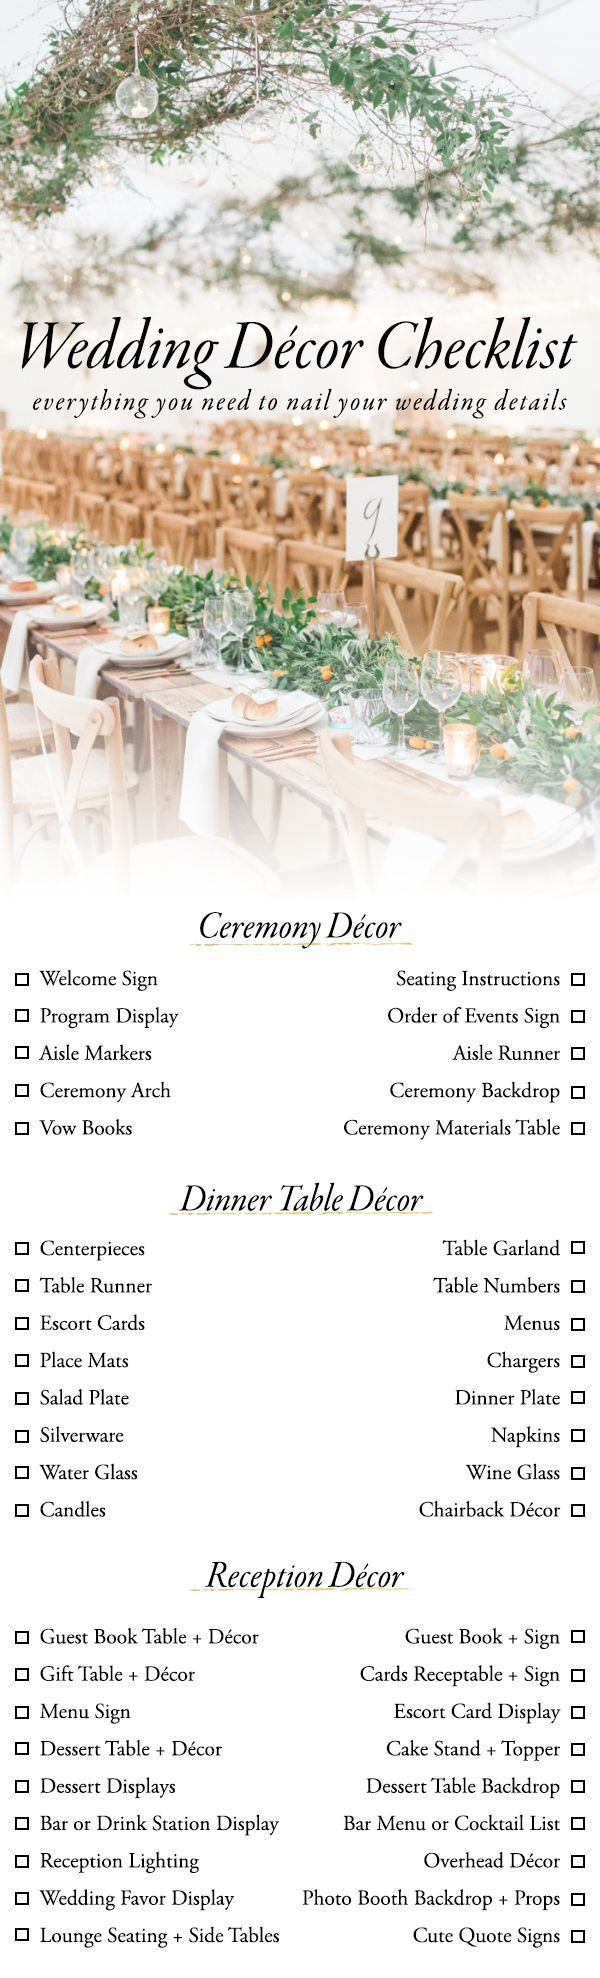 Use This Wedding Décor Checklist to Help You Nail Every ...